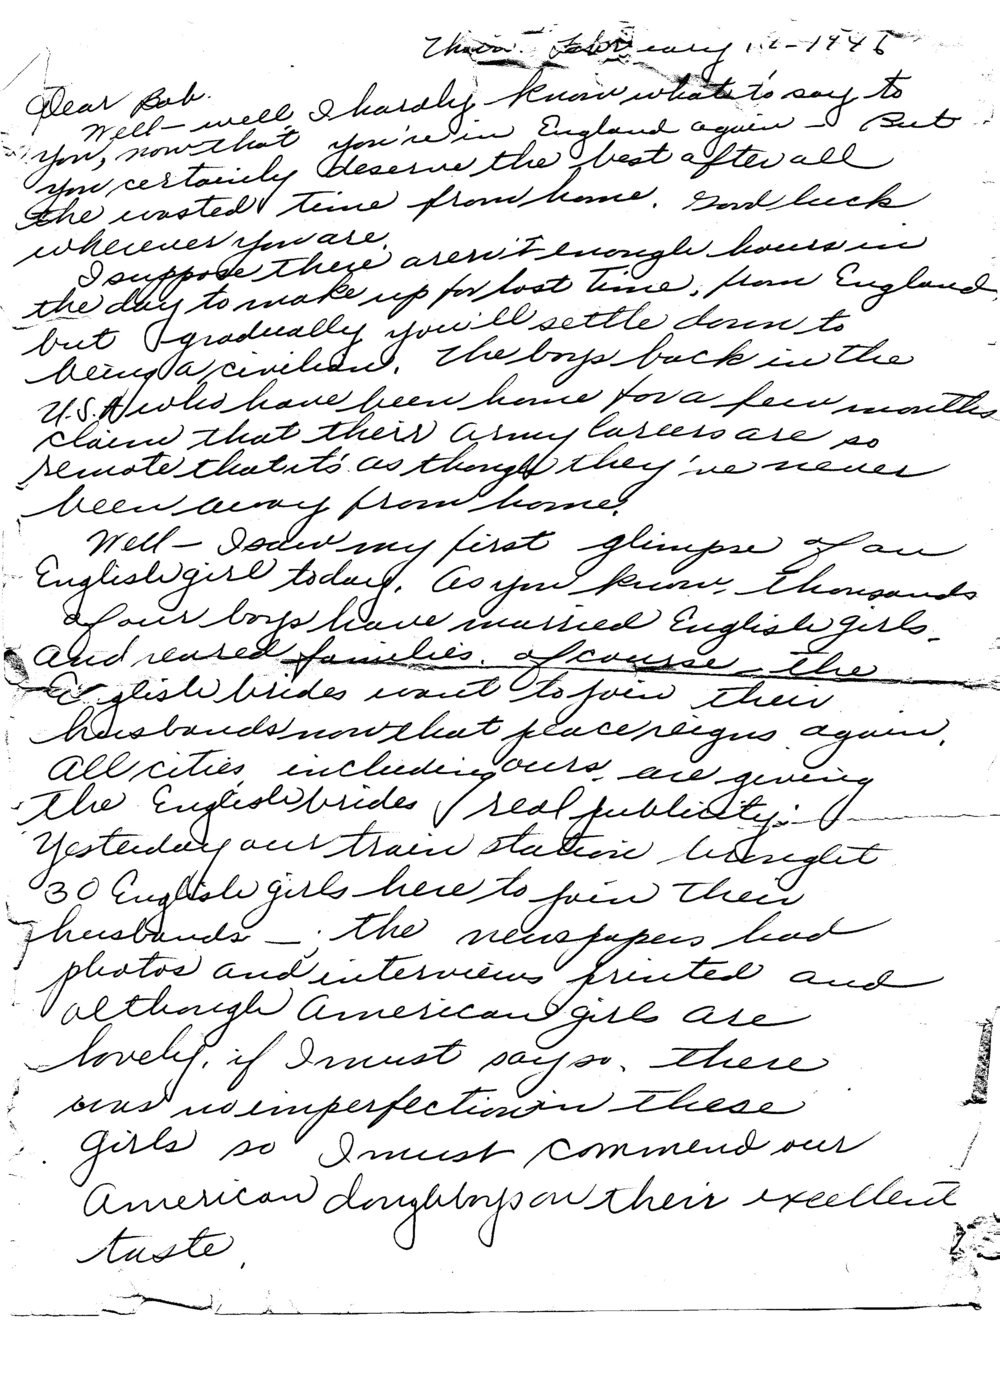 Ruth to Bob, Letter 6, February 1946, page 1 of 5